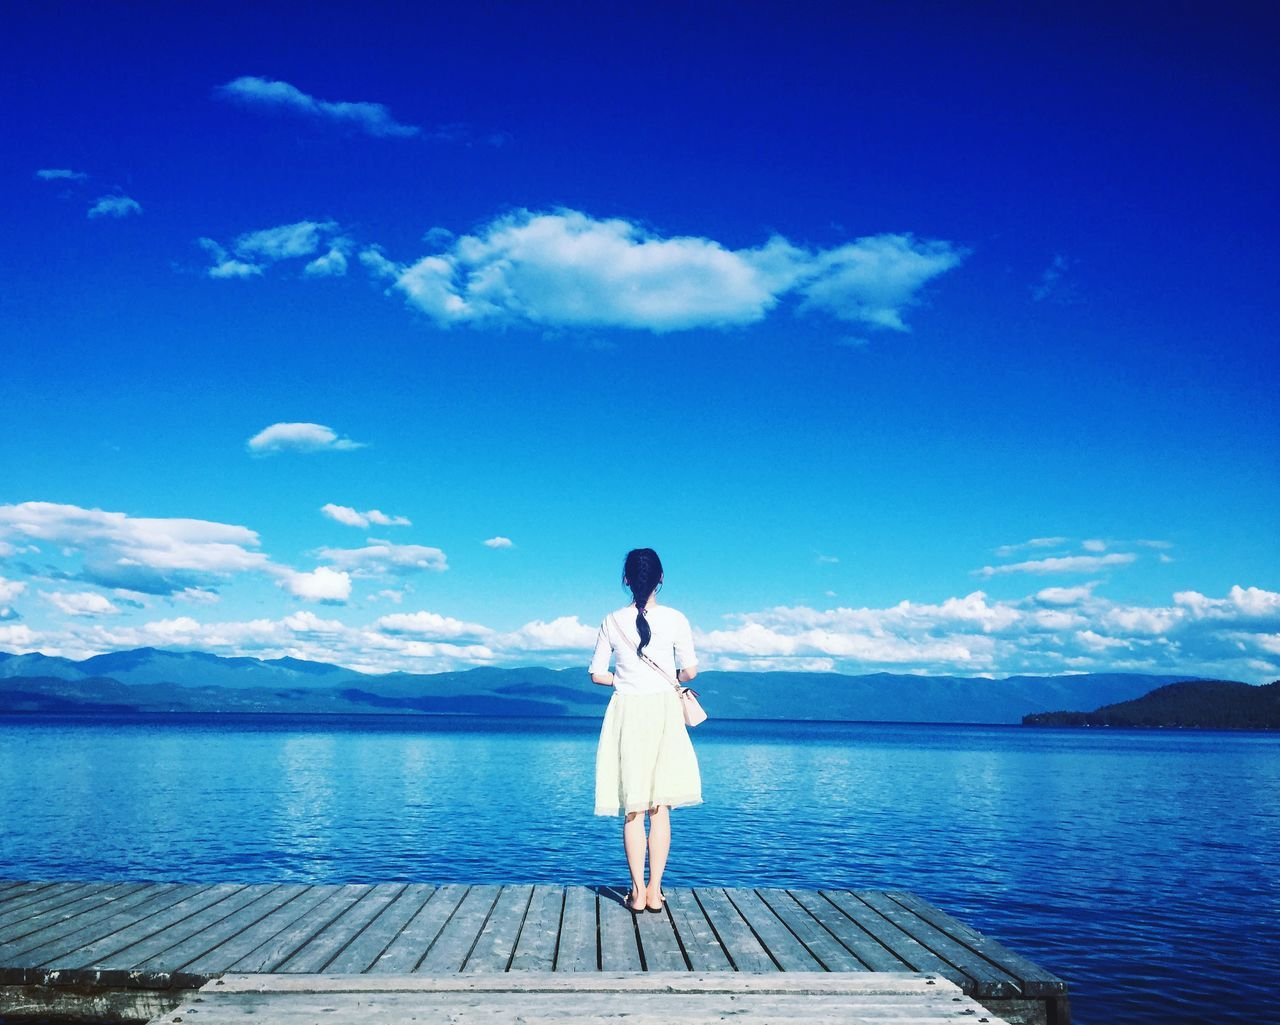 cloud - sky, sky, one person, rear view, water, lake, blue, tranquil scene, nature, full length, scenics, beauty in nature, standing, day, mountain, leisure activity, tranquility, women, outdoors, young adult, real people, one young woman only, adult, people